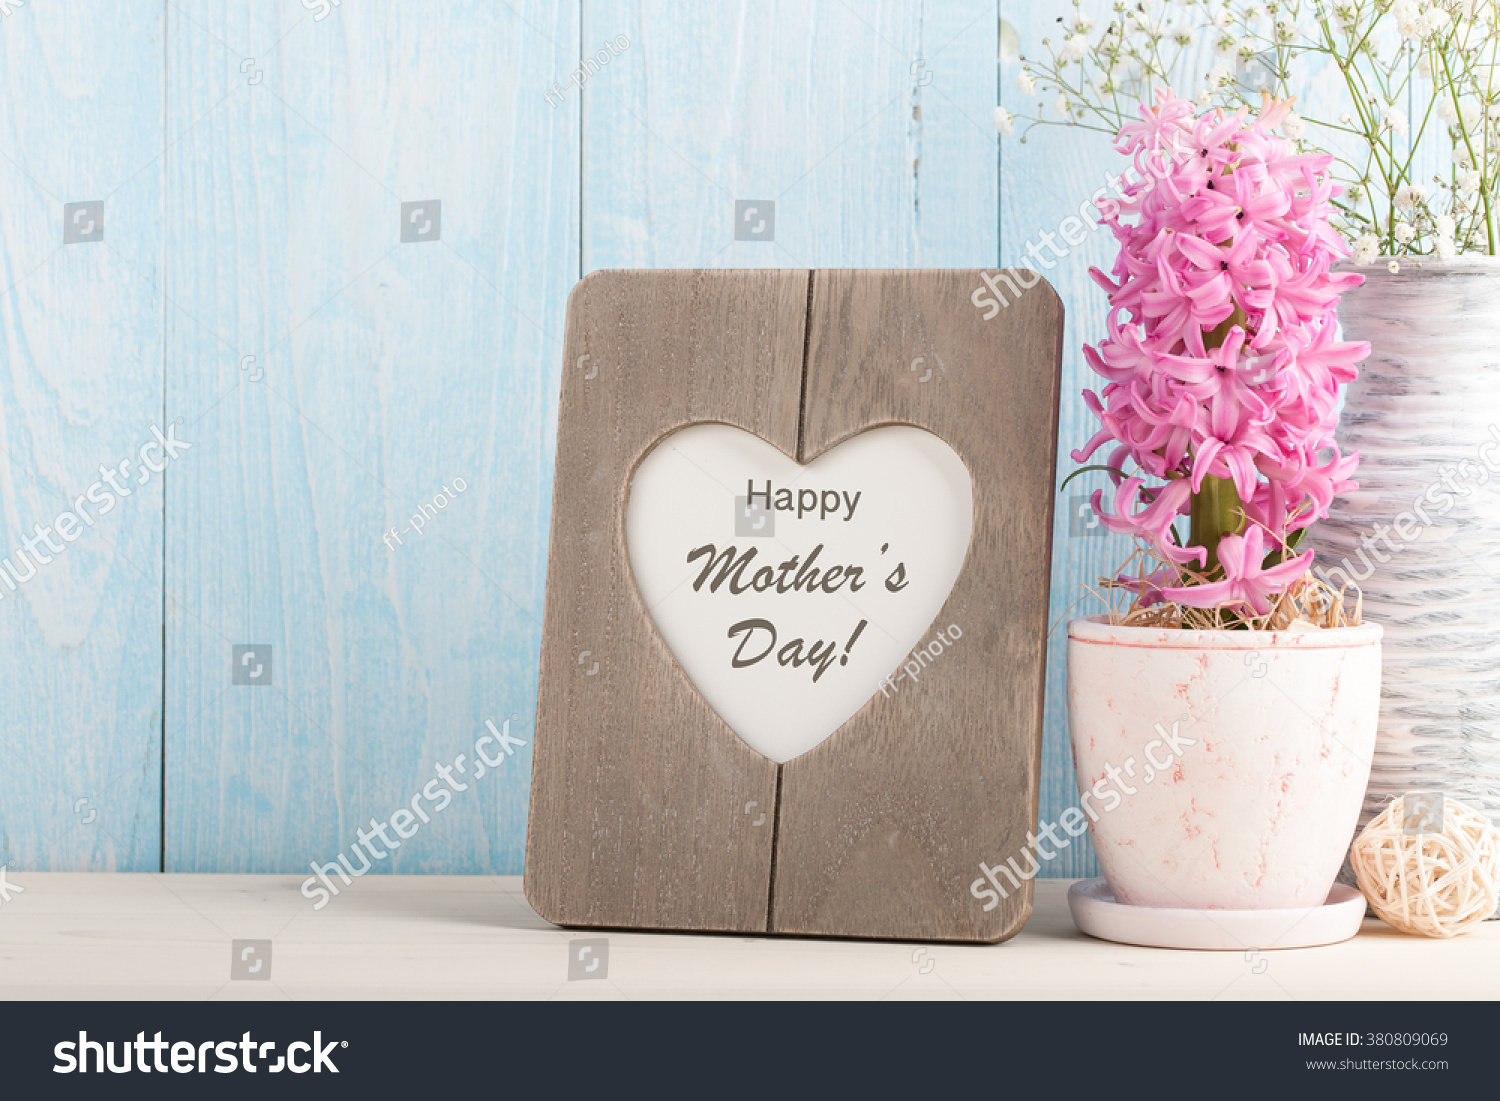 Greeting Message Mothers Day Stock Photo Royalty Free 380809069